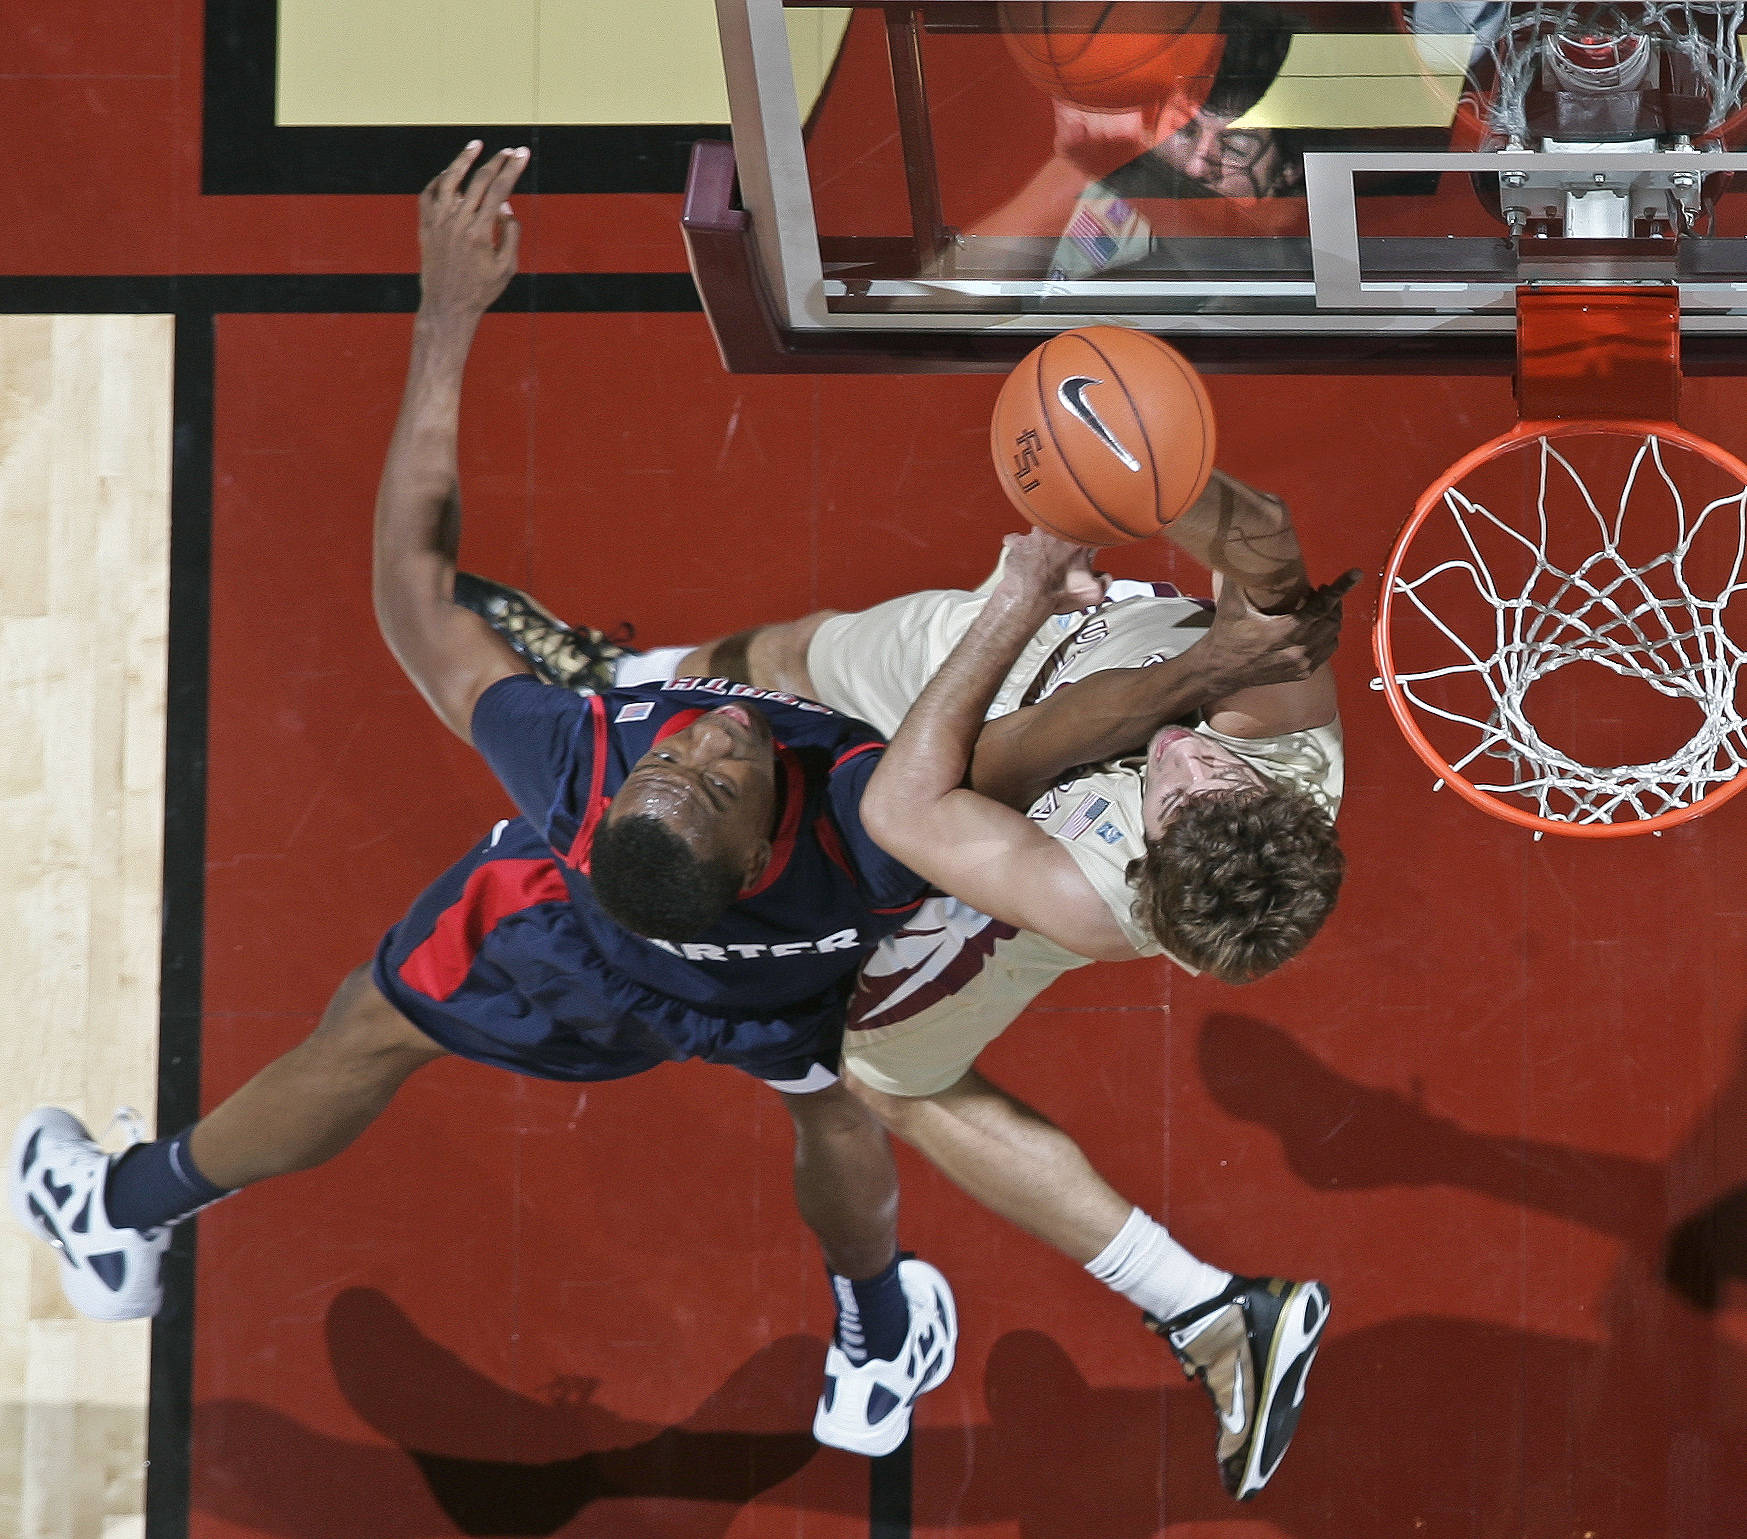 Florida State guard Luke Loucks, right, draws contact from South Alabama forward Javier Carter.. (AP Photo/Phil Sears)